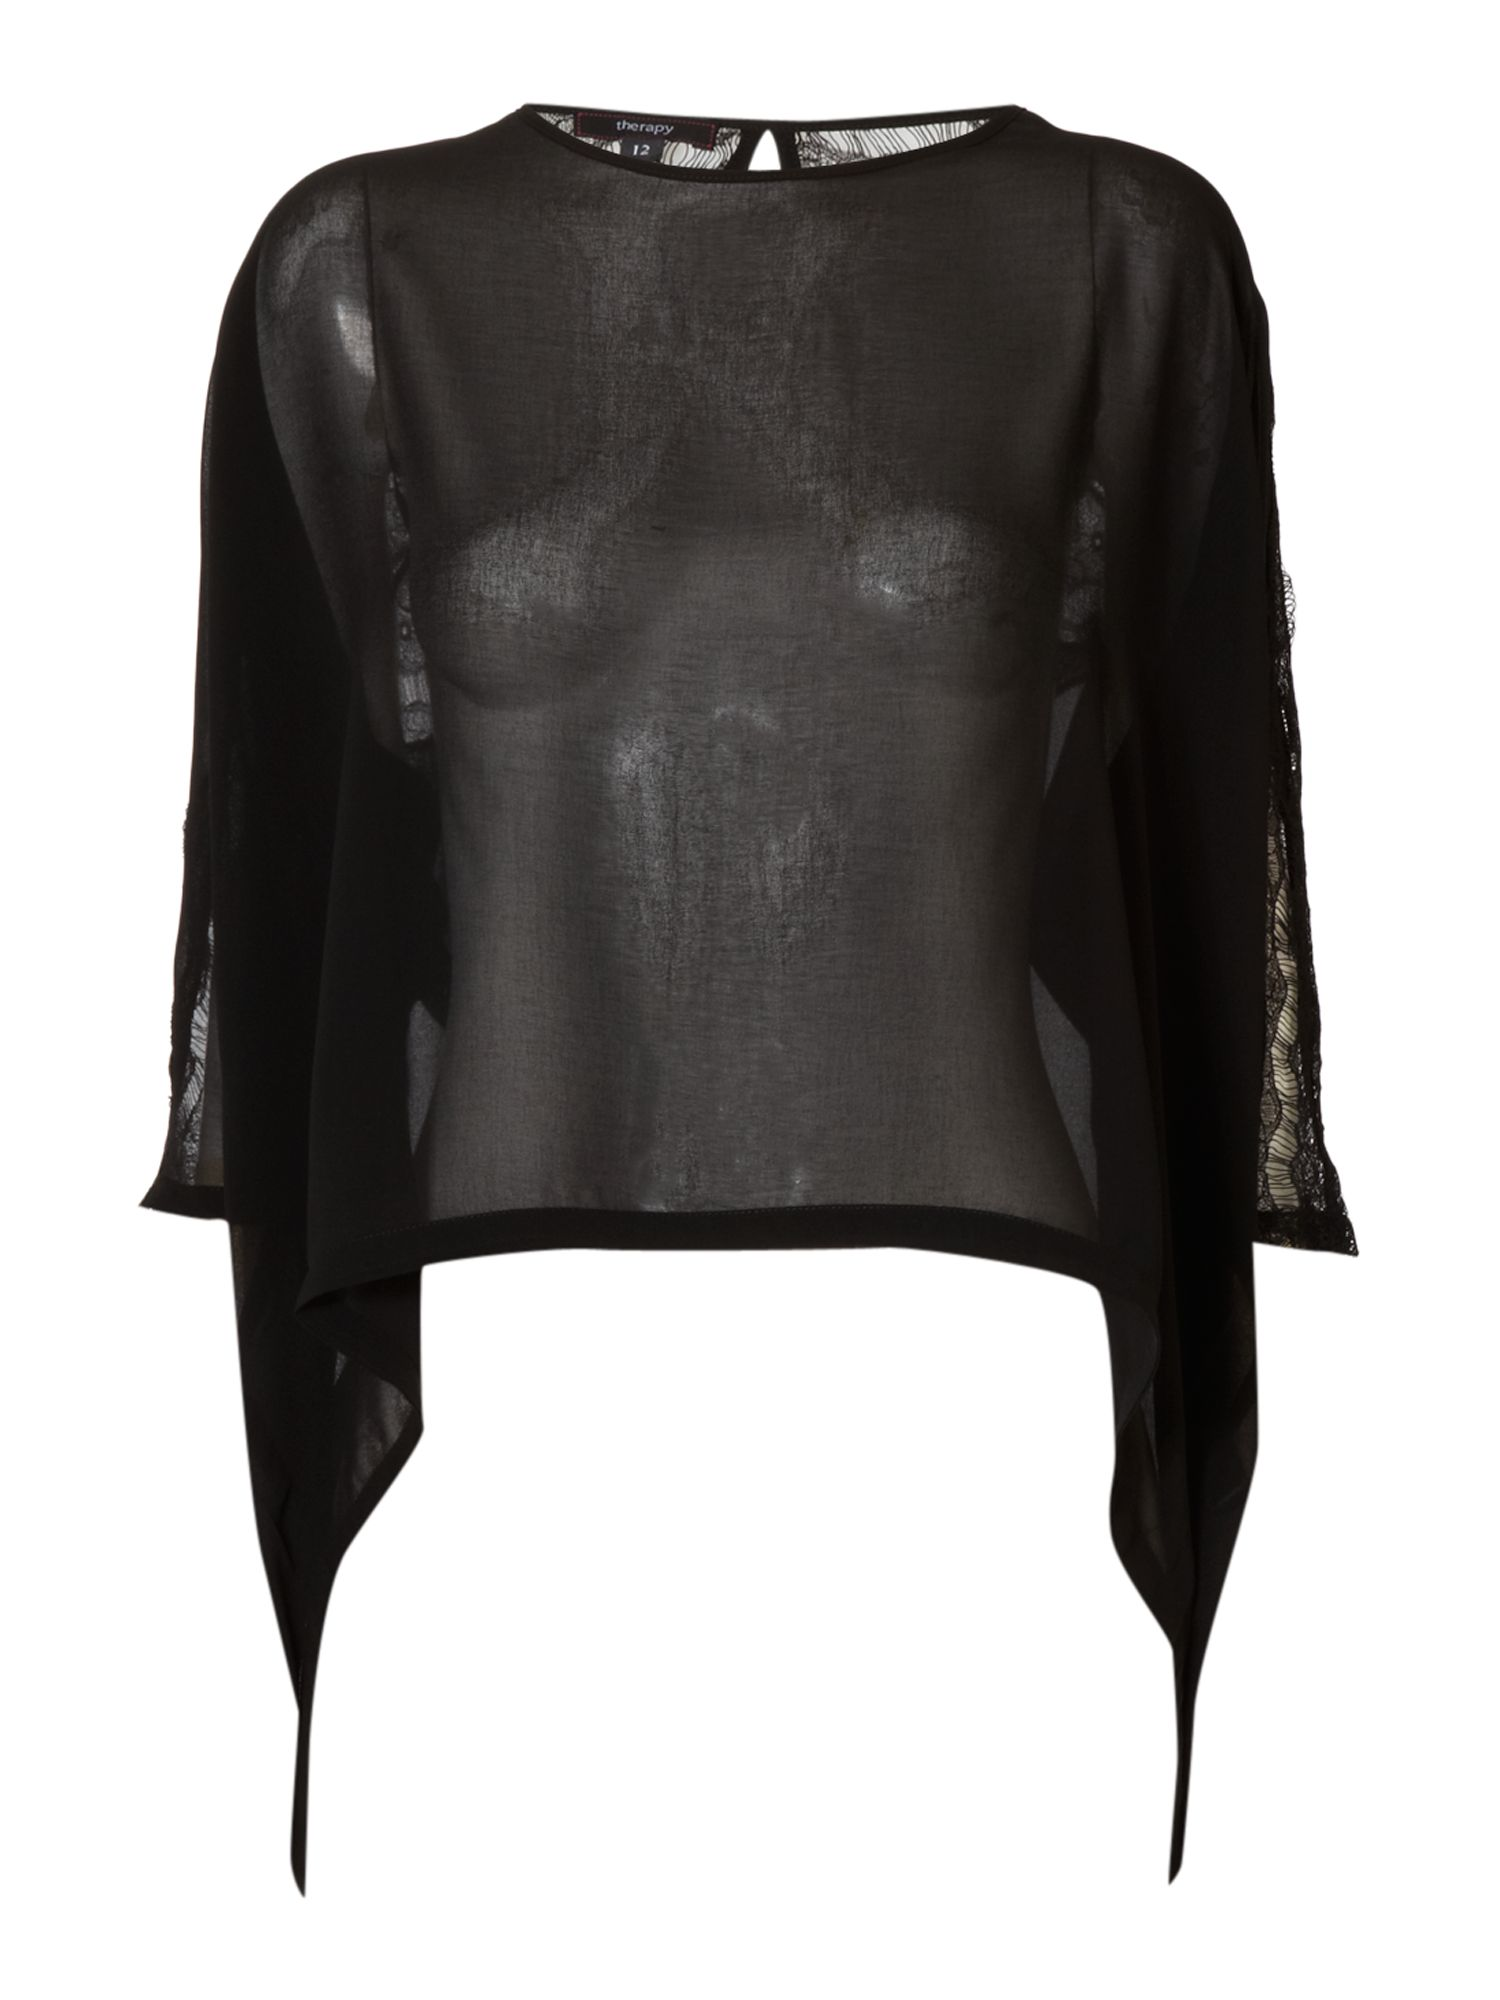 Therapy Womens Therapy Lace detail sleeve blouse, product image